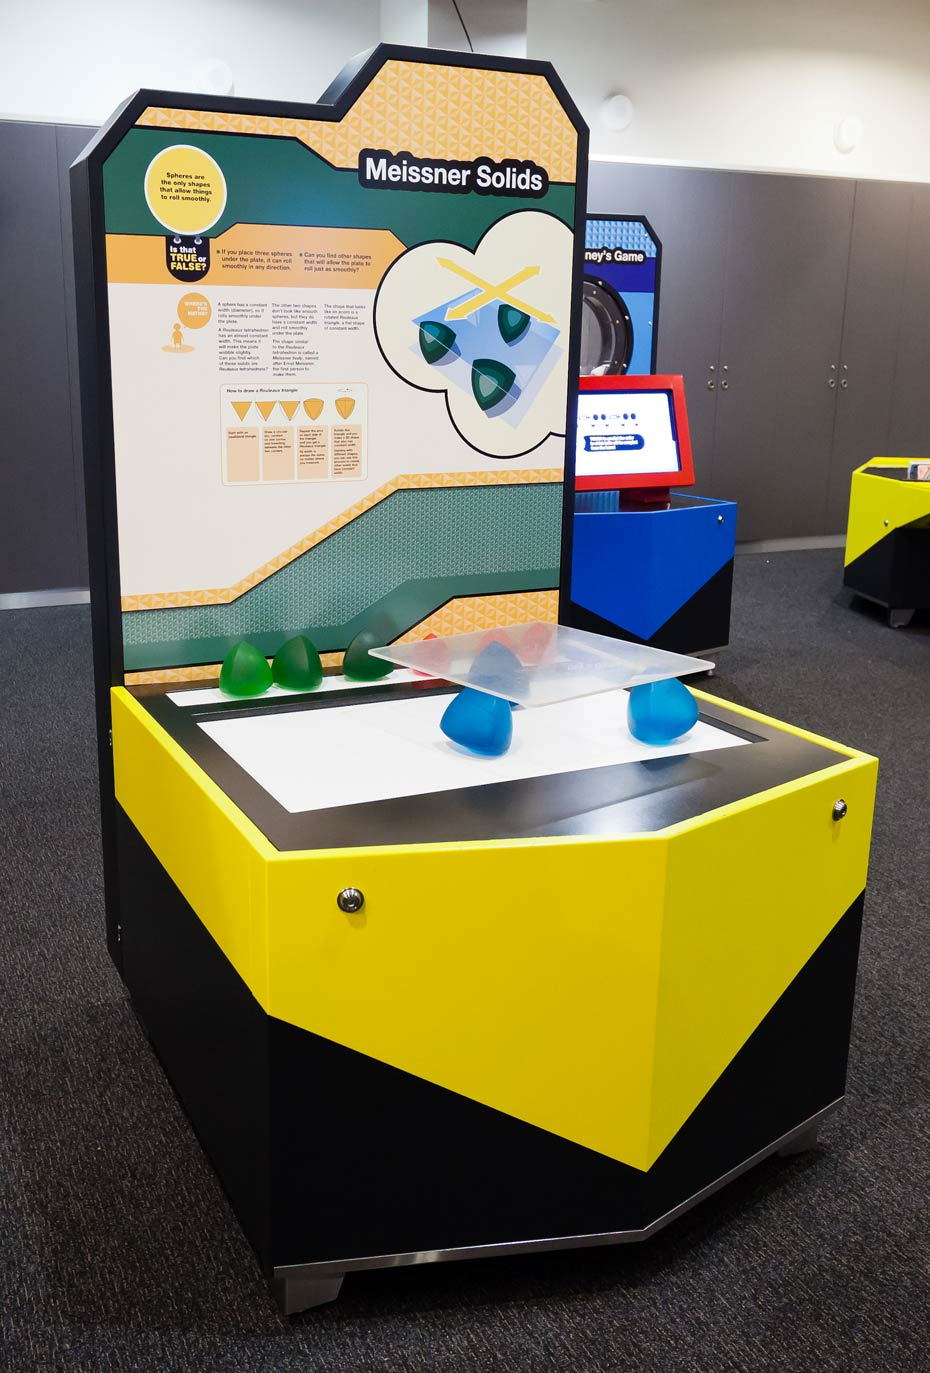 A yellow and black exhibit table and information panel. On the table top sits blue and green solid shapes and a square glass plate.